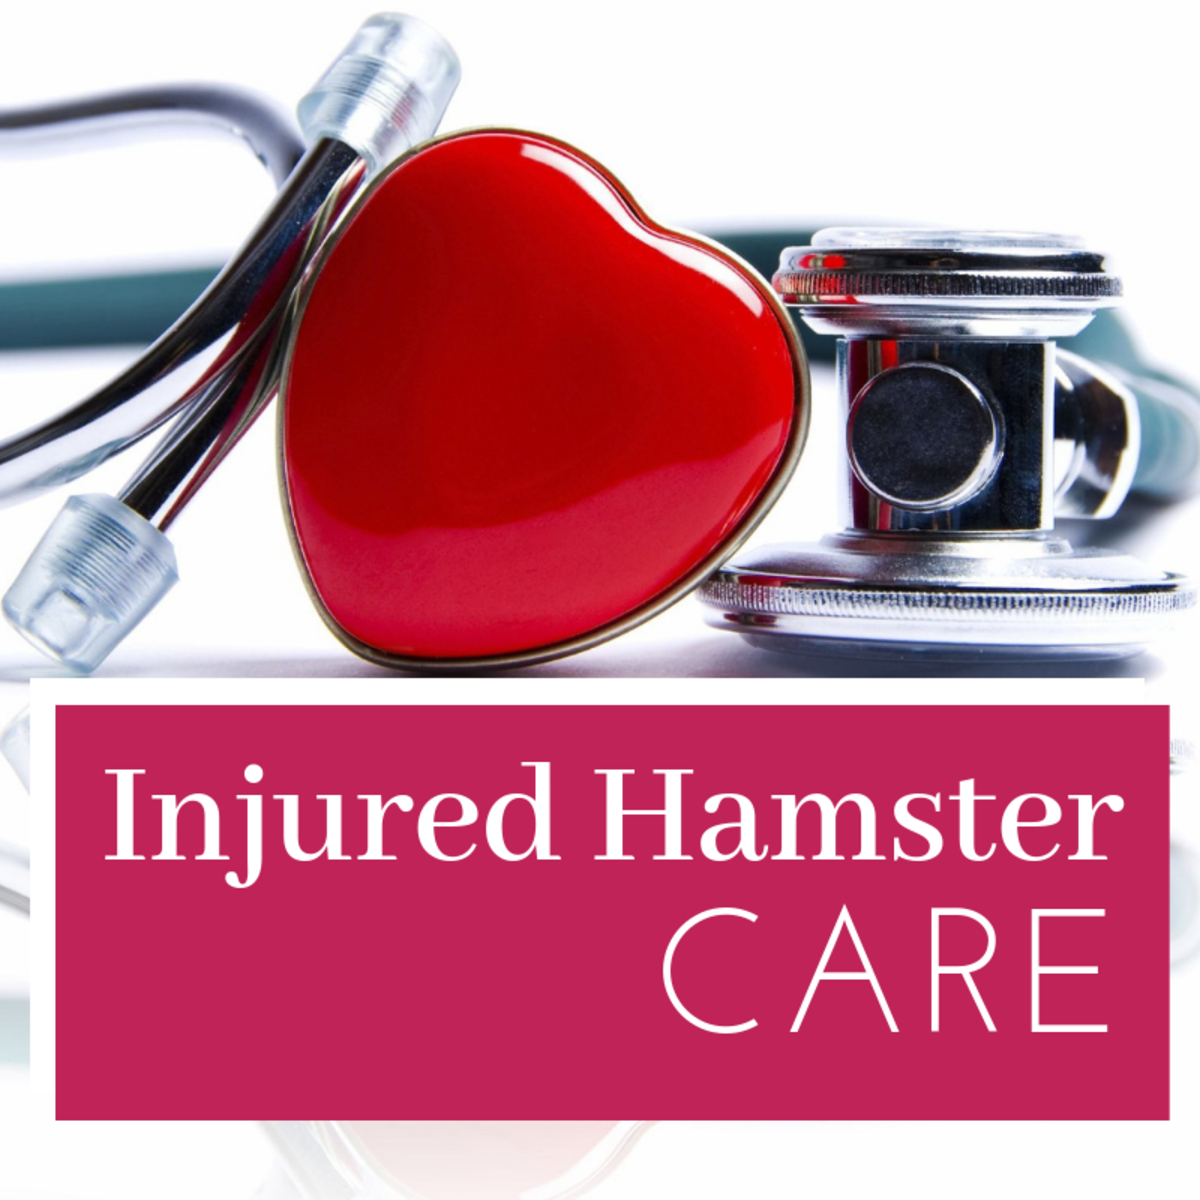 How to Care for an Injured Hamster